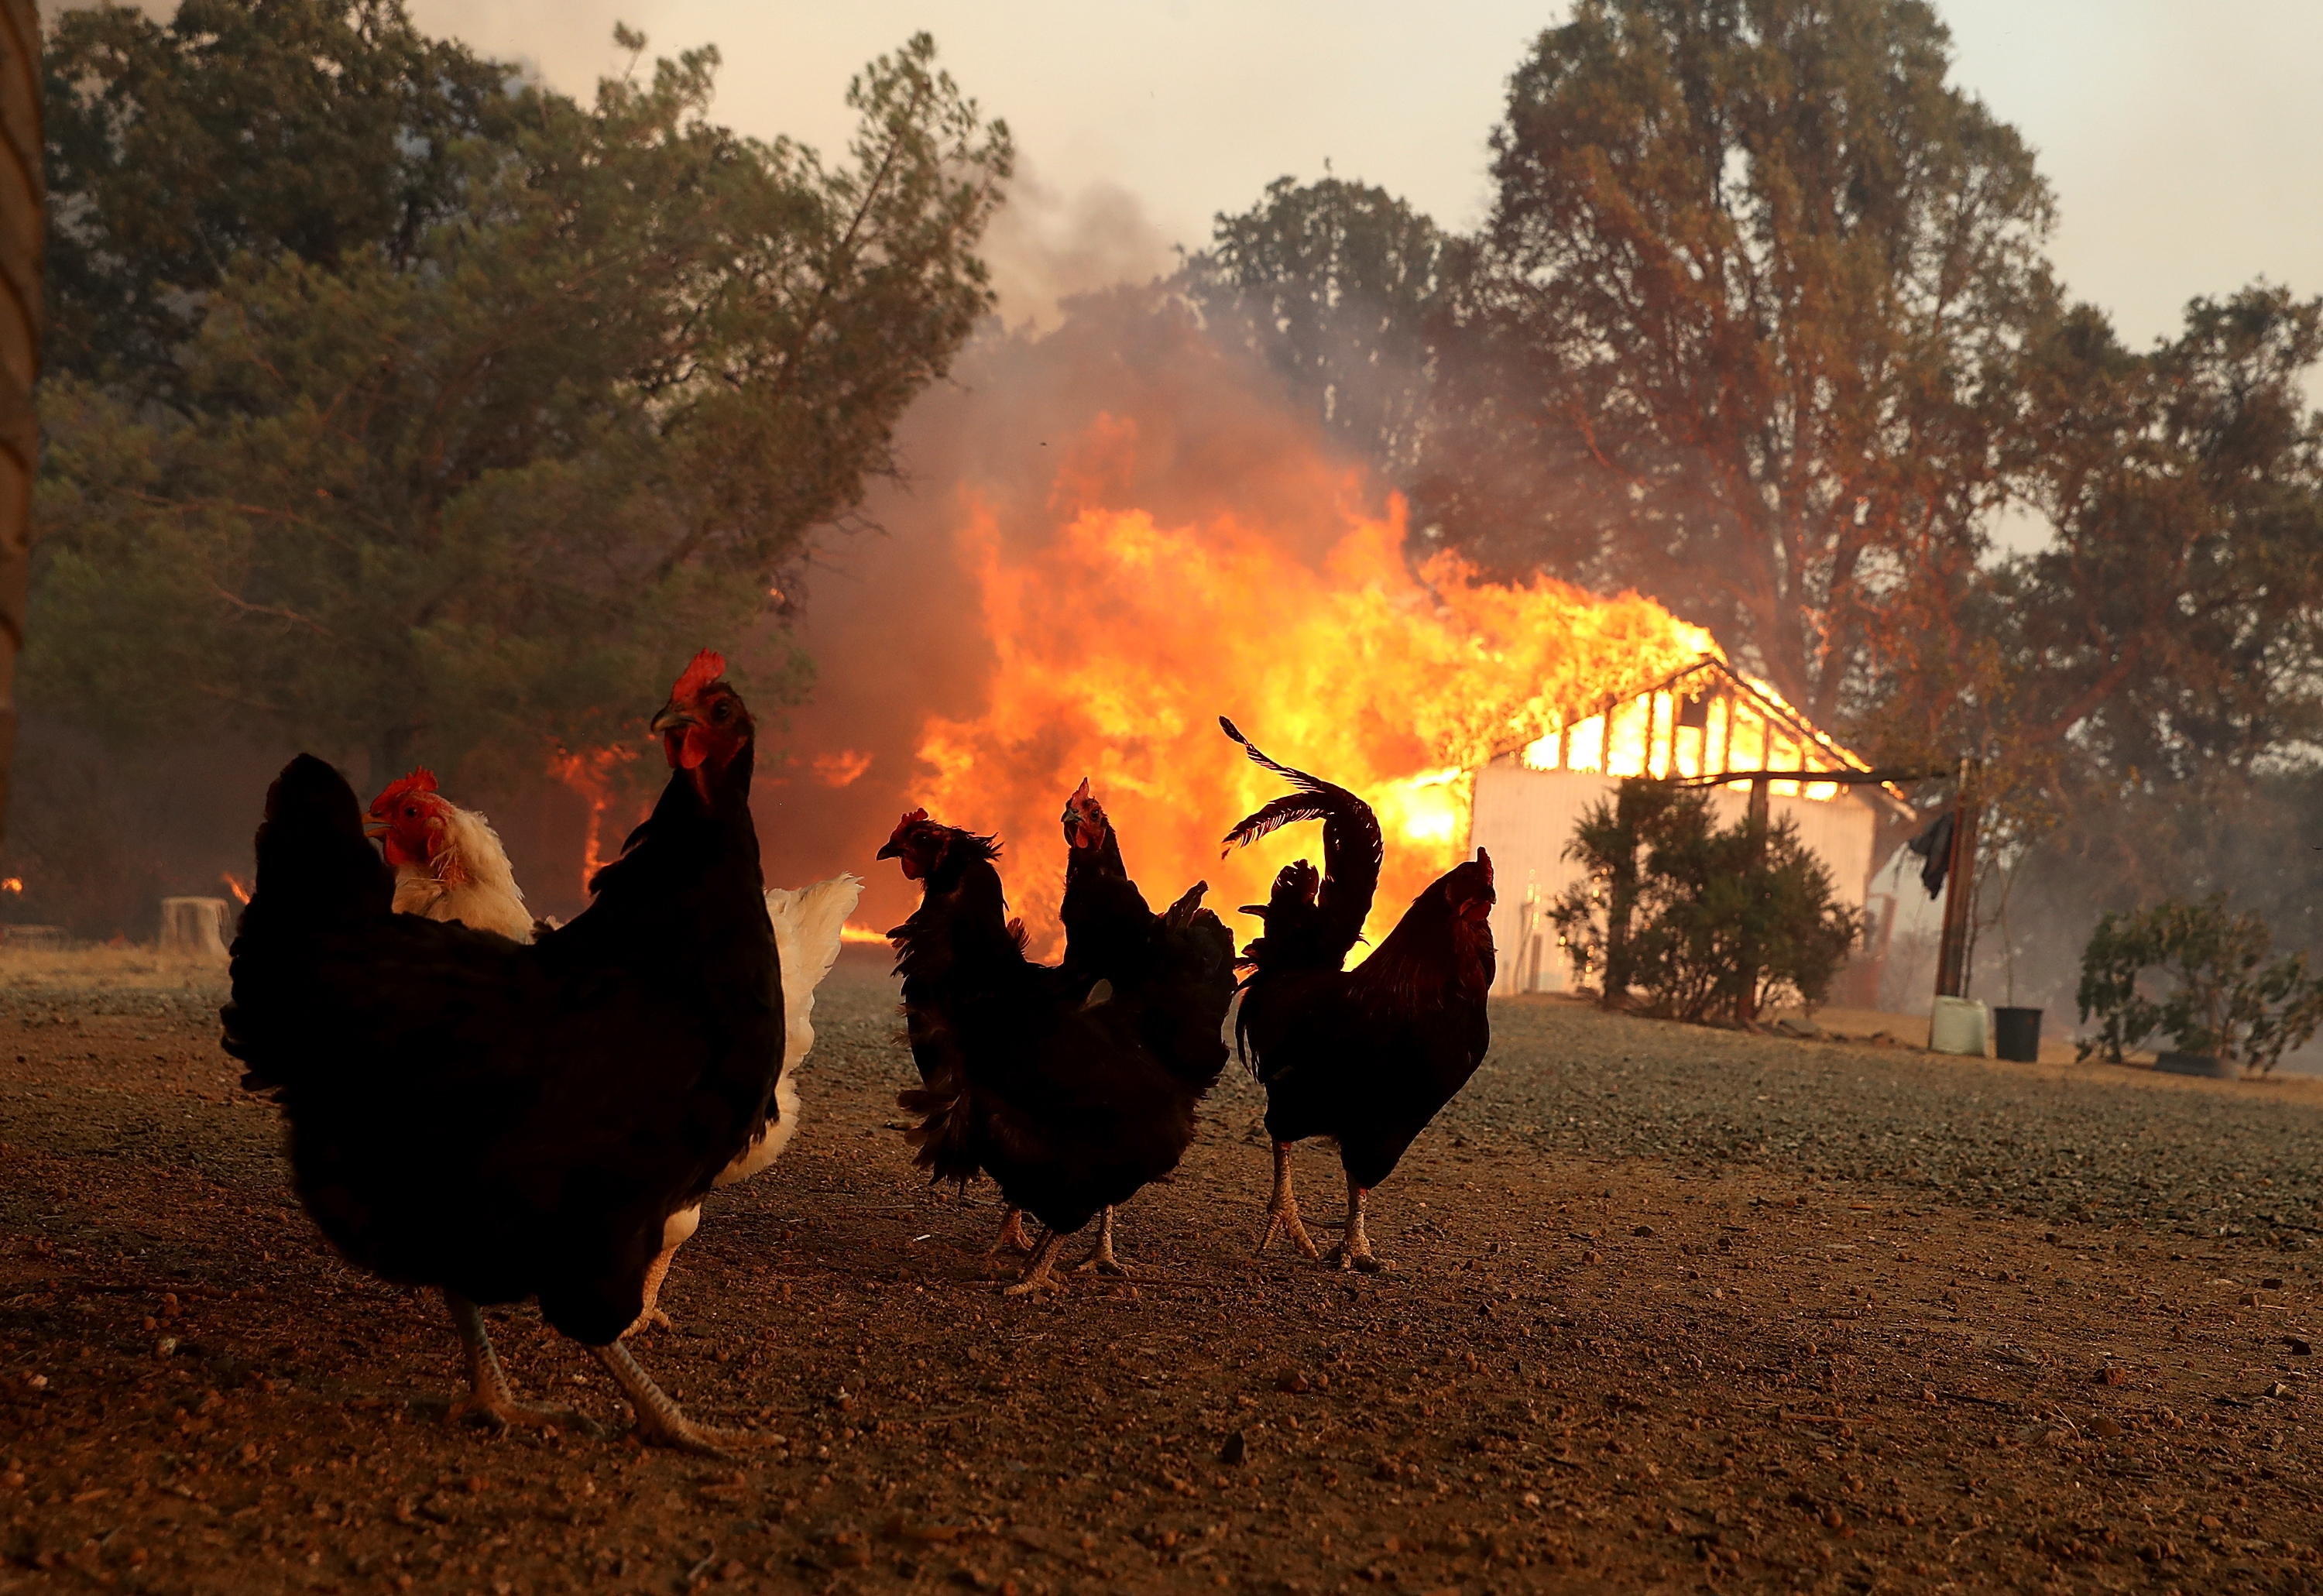 <div class='meta'><div class='origin-logo' data-origin='none'></div><span class='caption-text' data-credit='Justin Sullivan/Getty Images'>Chickens stand near a burning home as the River Fire moves through the area on July 31, 2018 in Lakeport, California.</span></div>